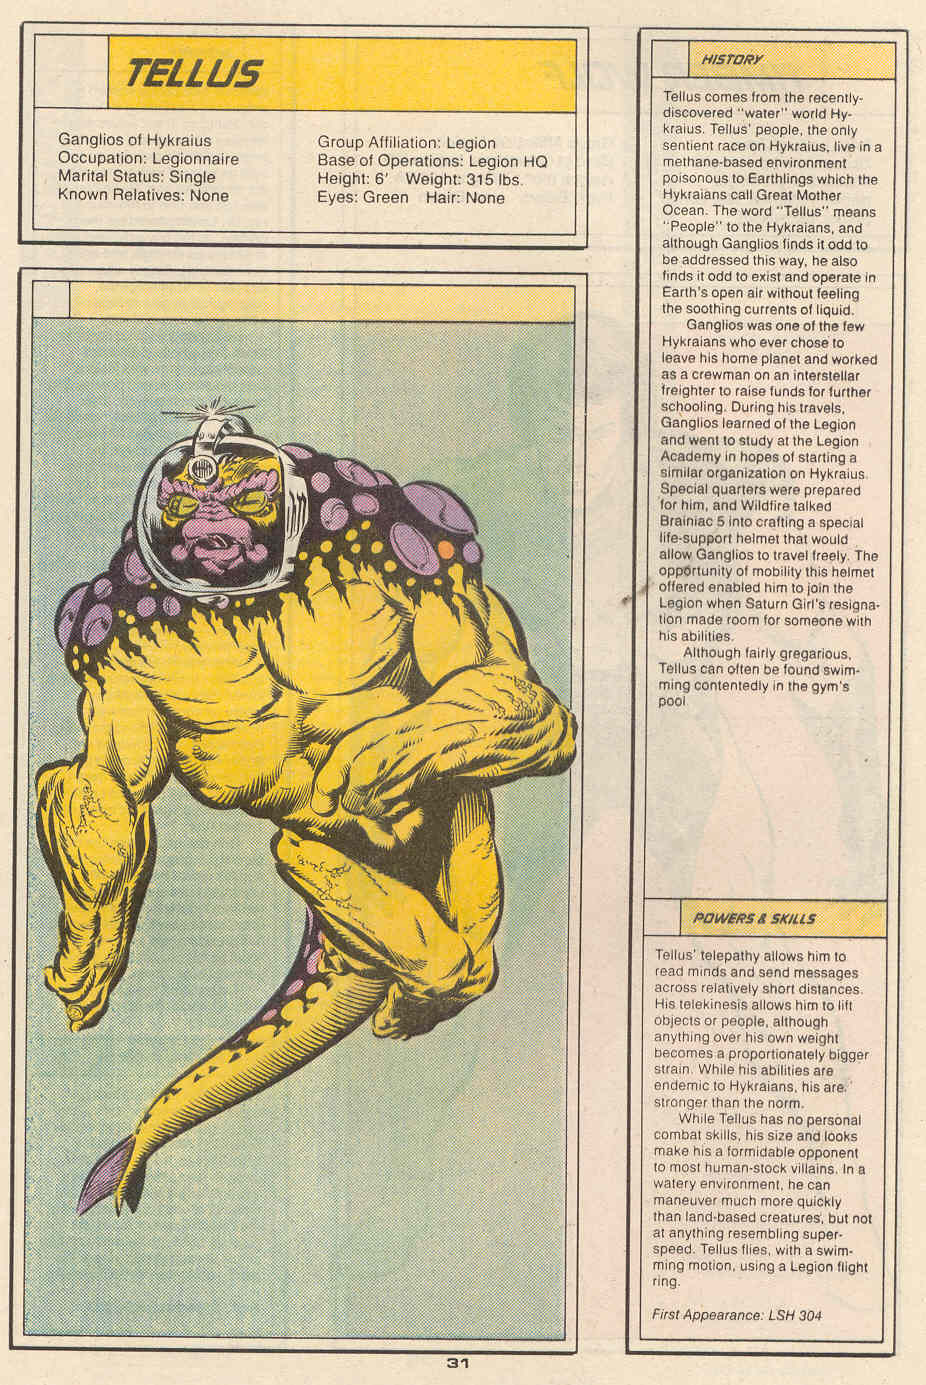 Tellus by Greg LaRocque and Mike DeCarlo - Who's Who in the Legion of Super-Heroes #6